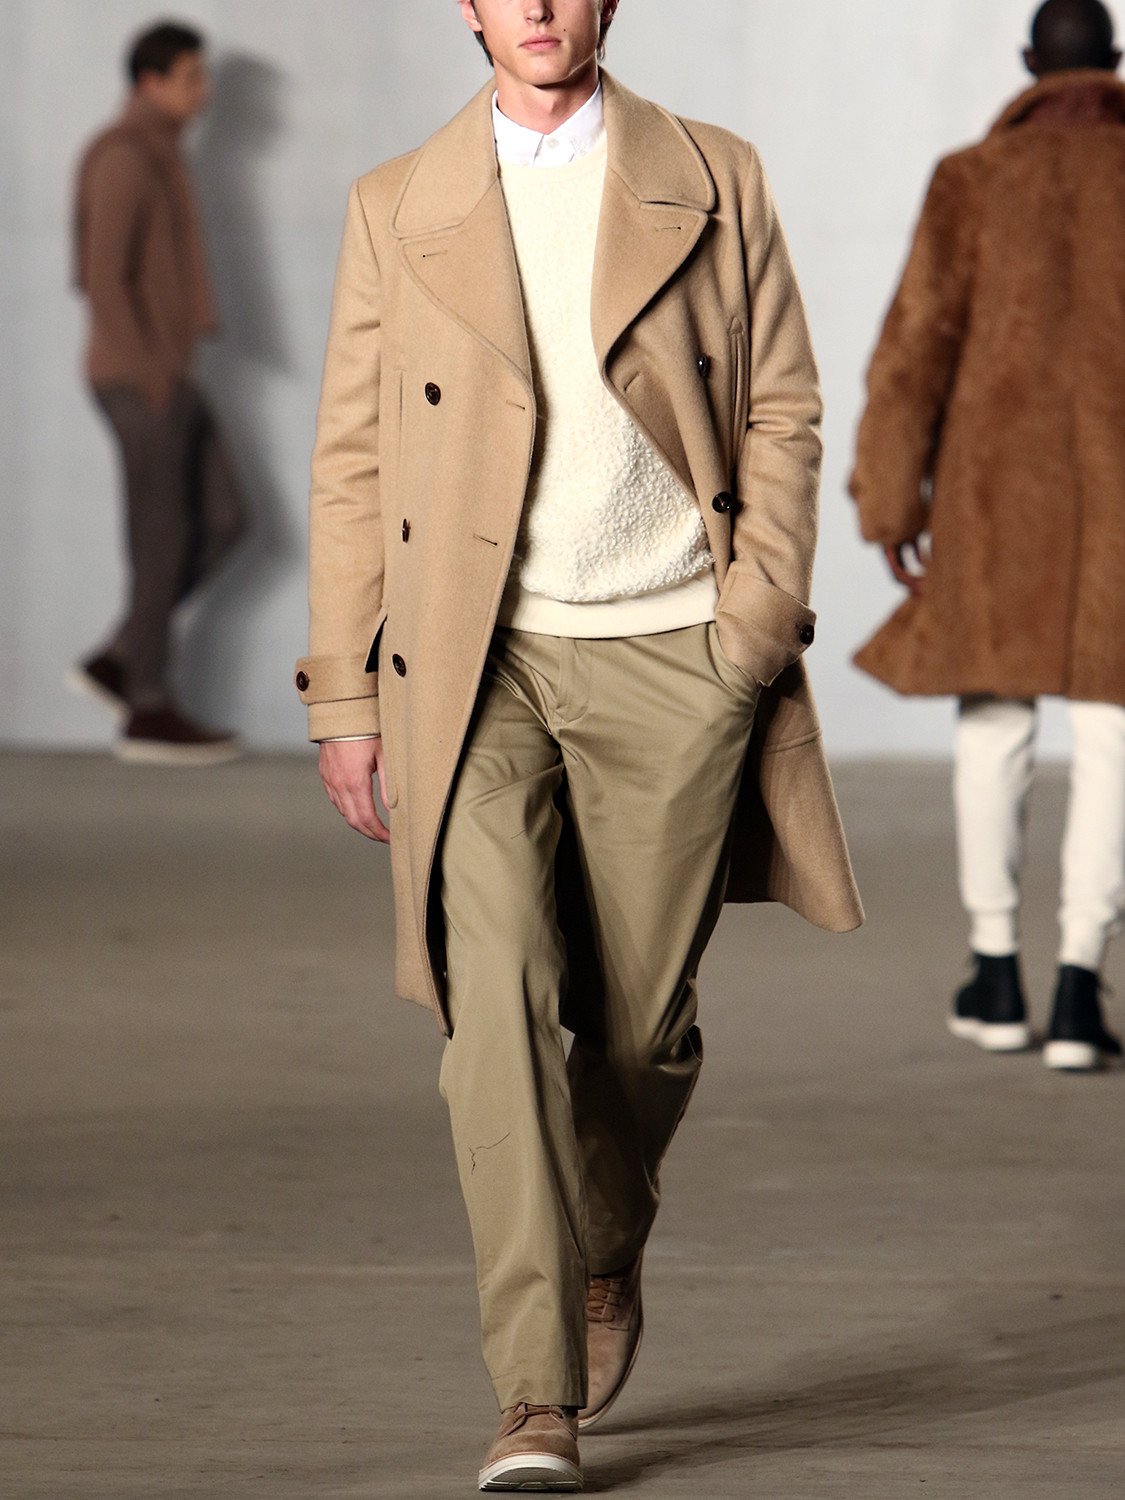 Men's outfit idea for 2021 with camel coat, neutral plain sweatshirt, white casual shirt, neutral chinos, neutral desert boots. Suitable for autumn.